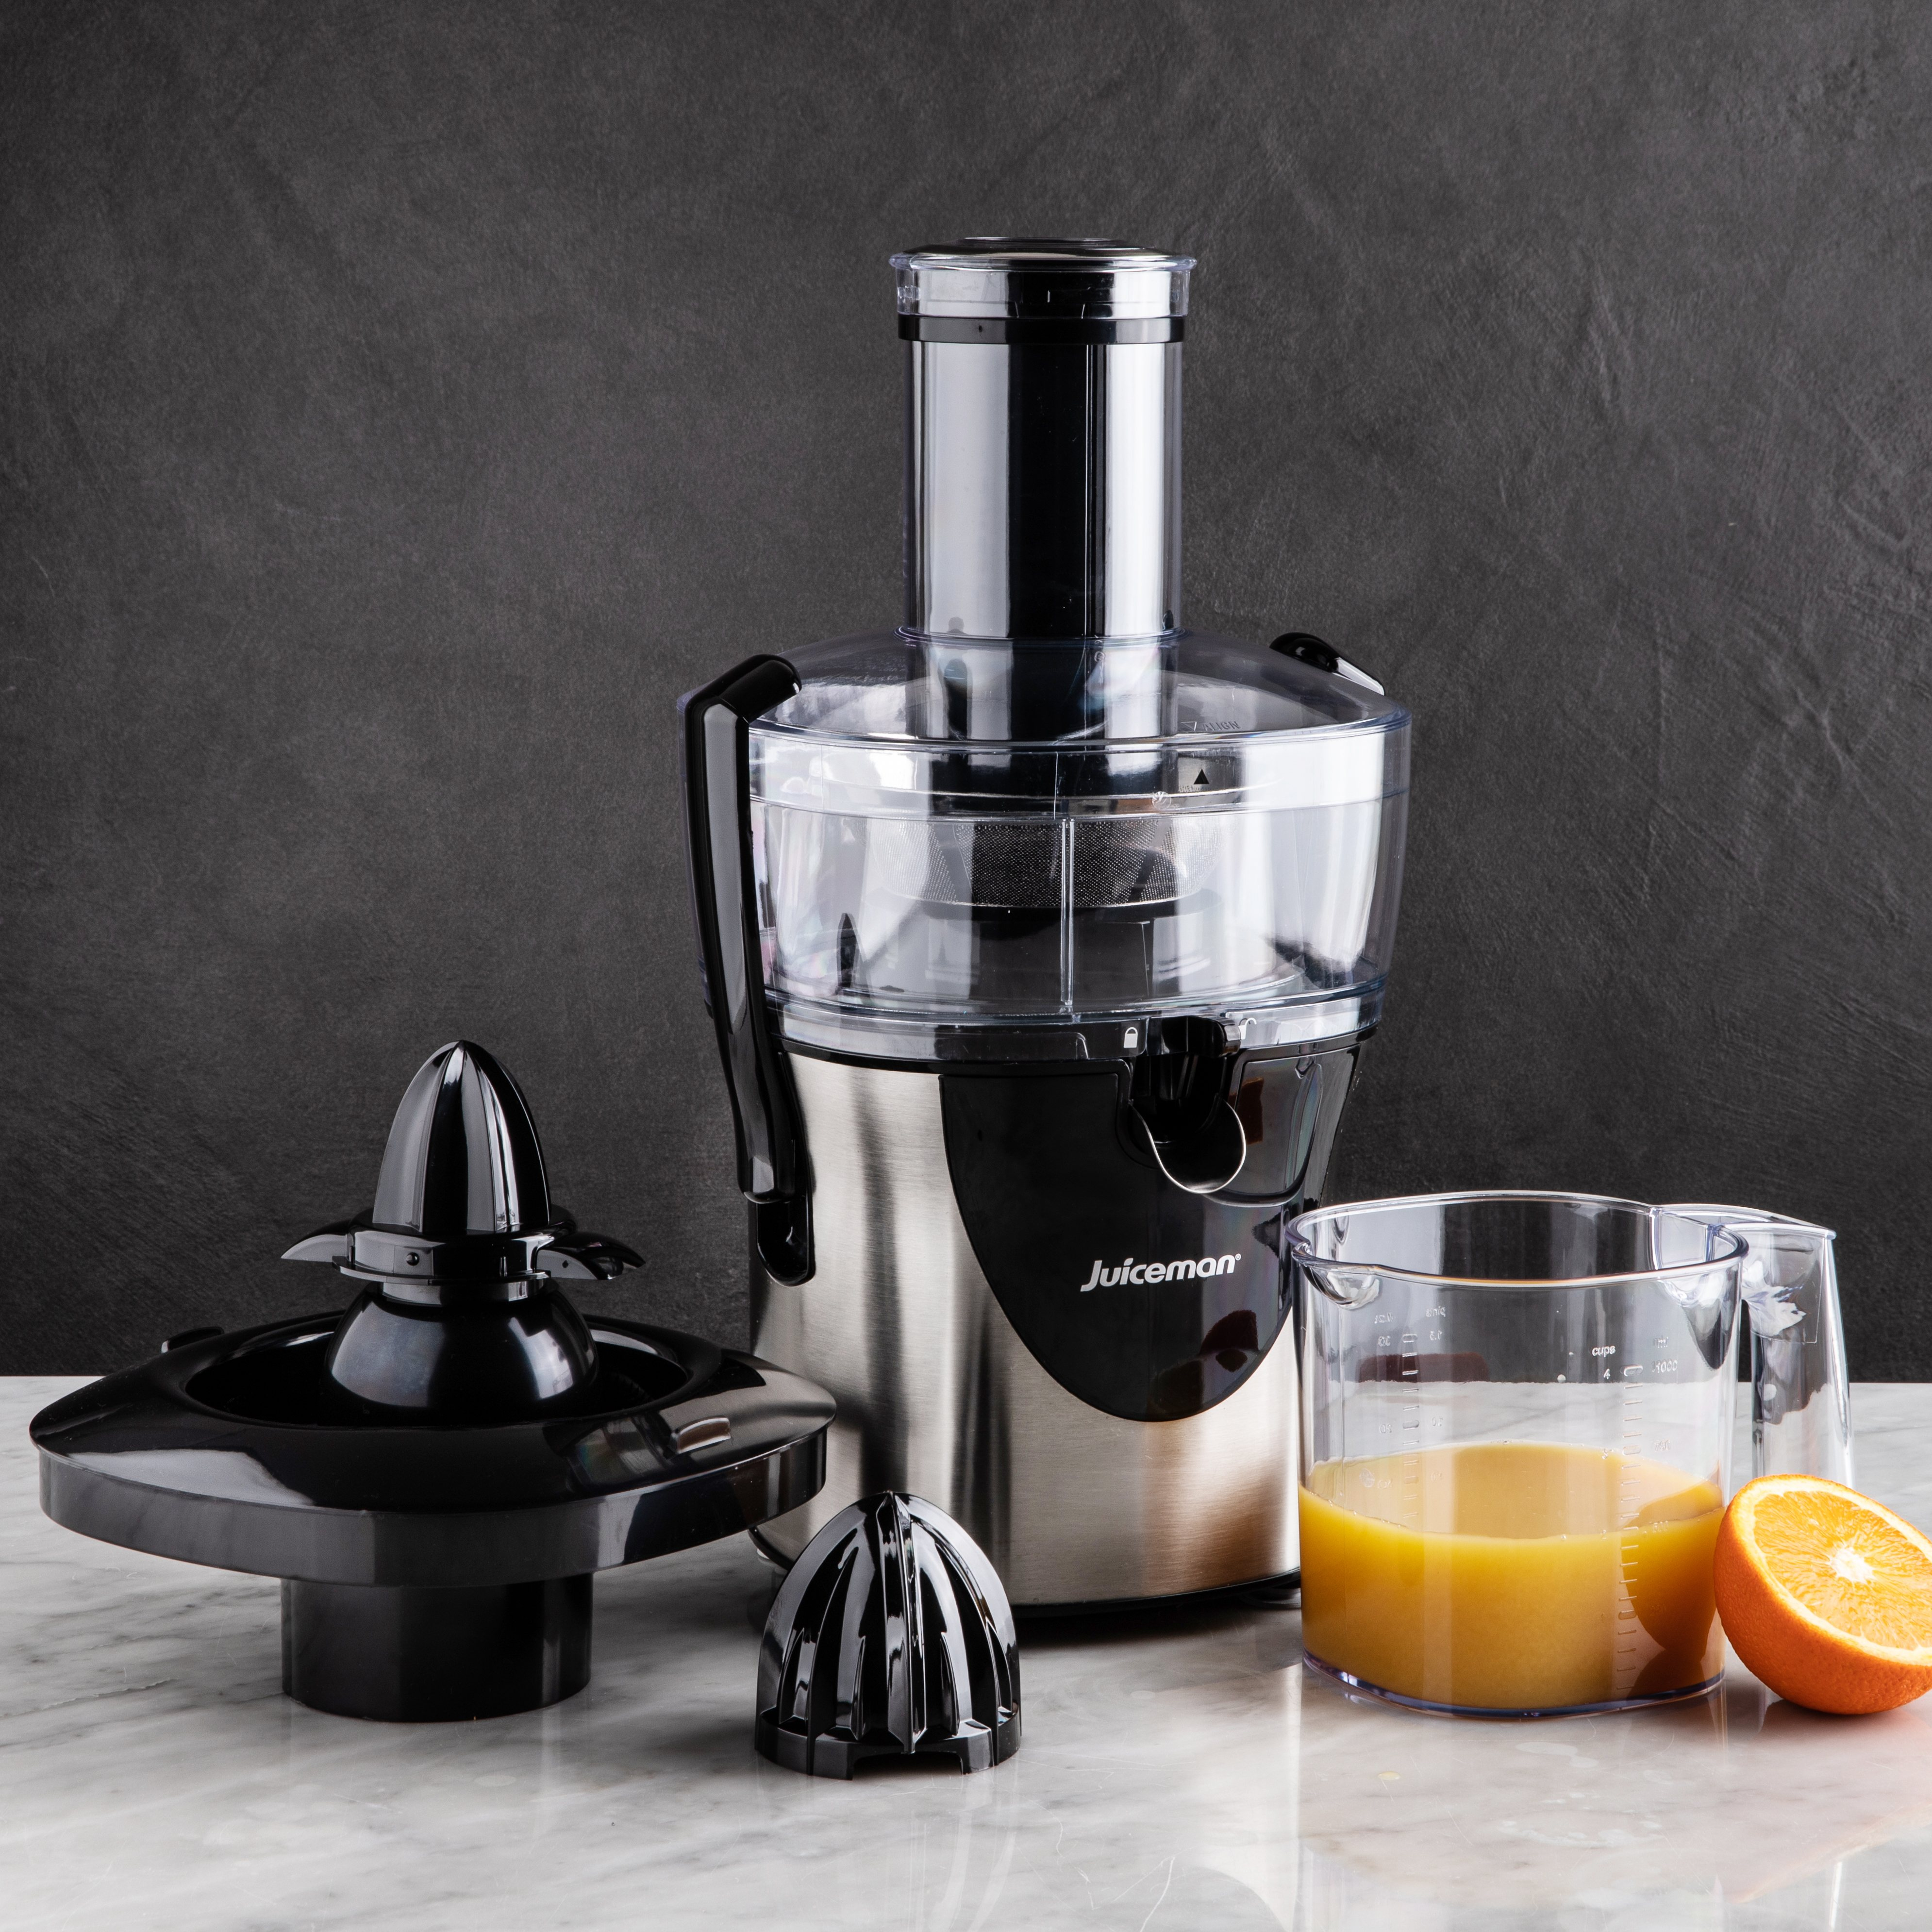 stainless steel juicer with oranges and orange juice lux wedding gifts